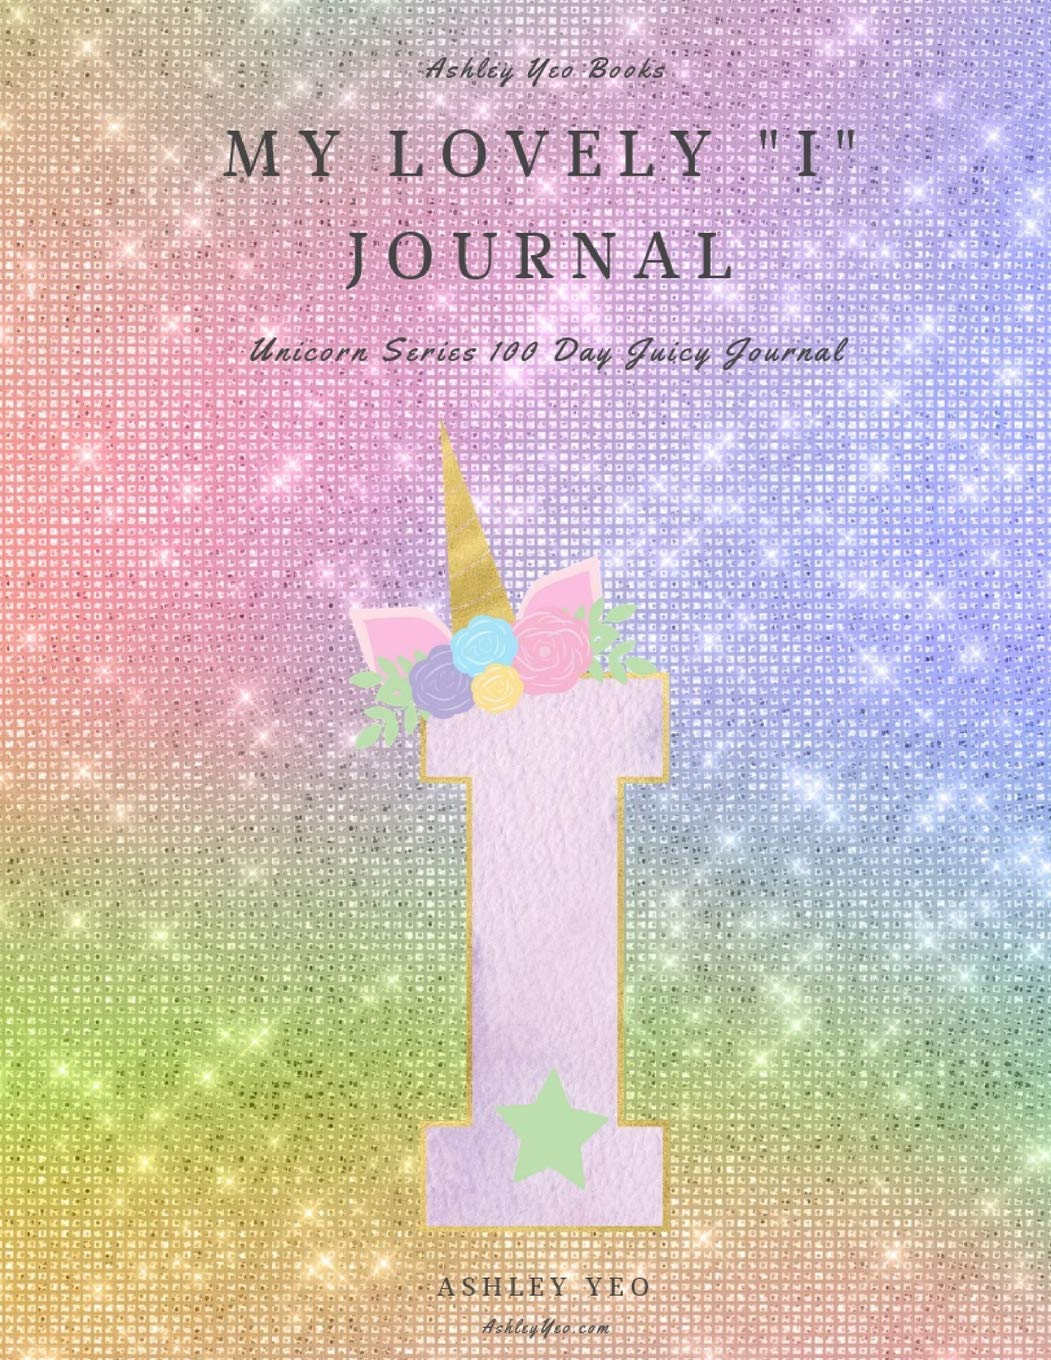 """My Lovely """"I"""" Journal: Unicorn Series 100 Day Juicy Journal"""